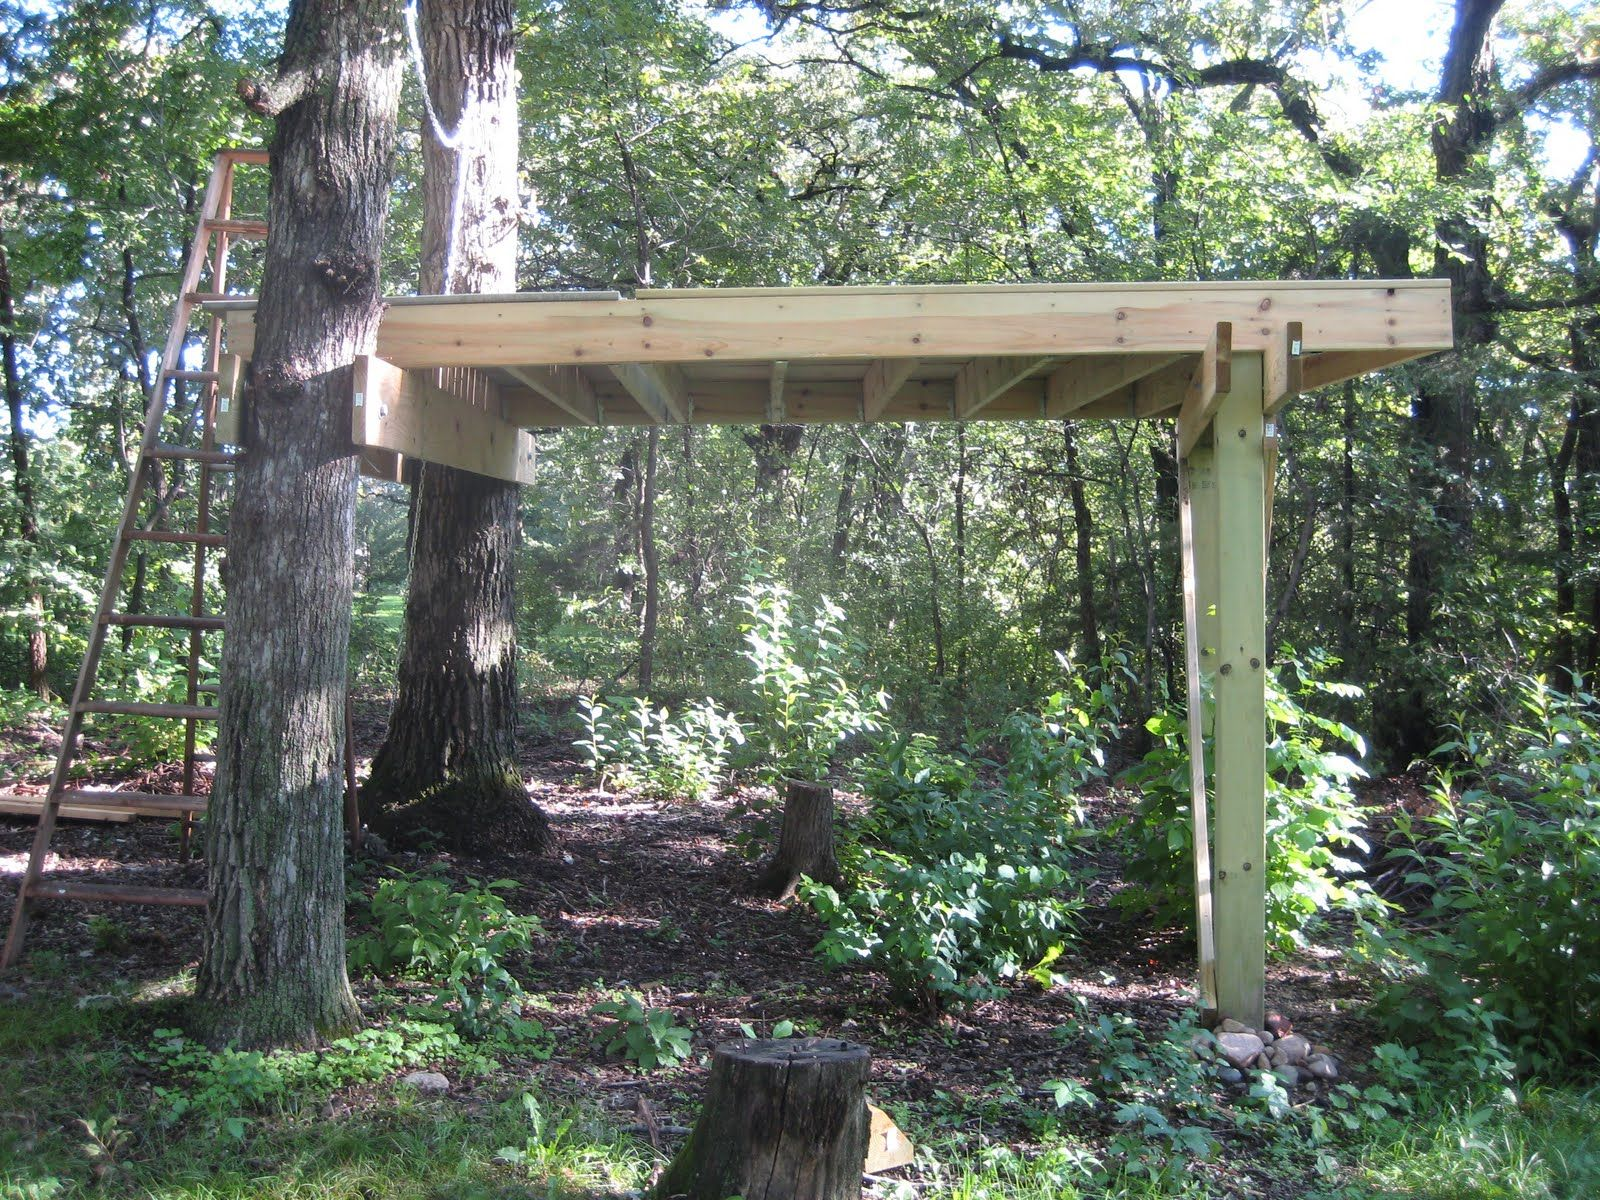 blinds hog pin platform build a to how deer tower blind hunting stand tree turkey on elevated